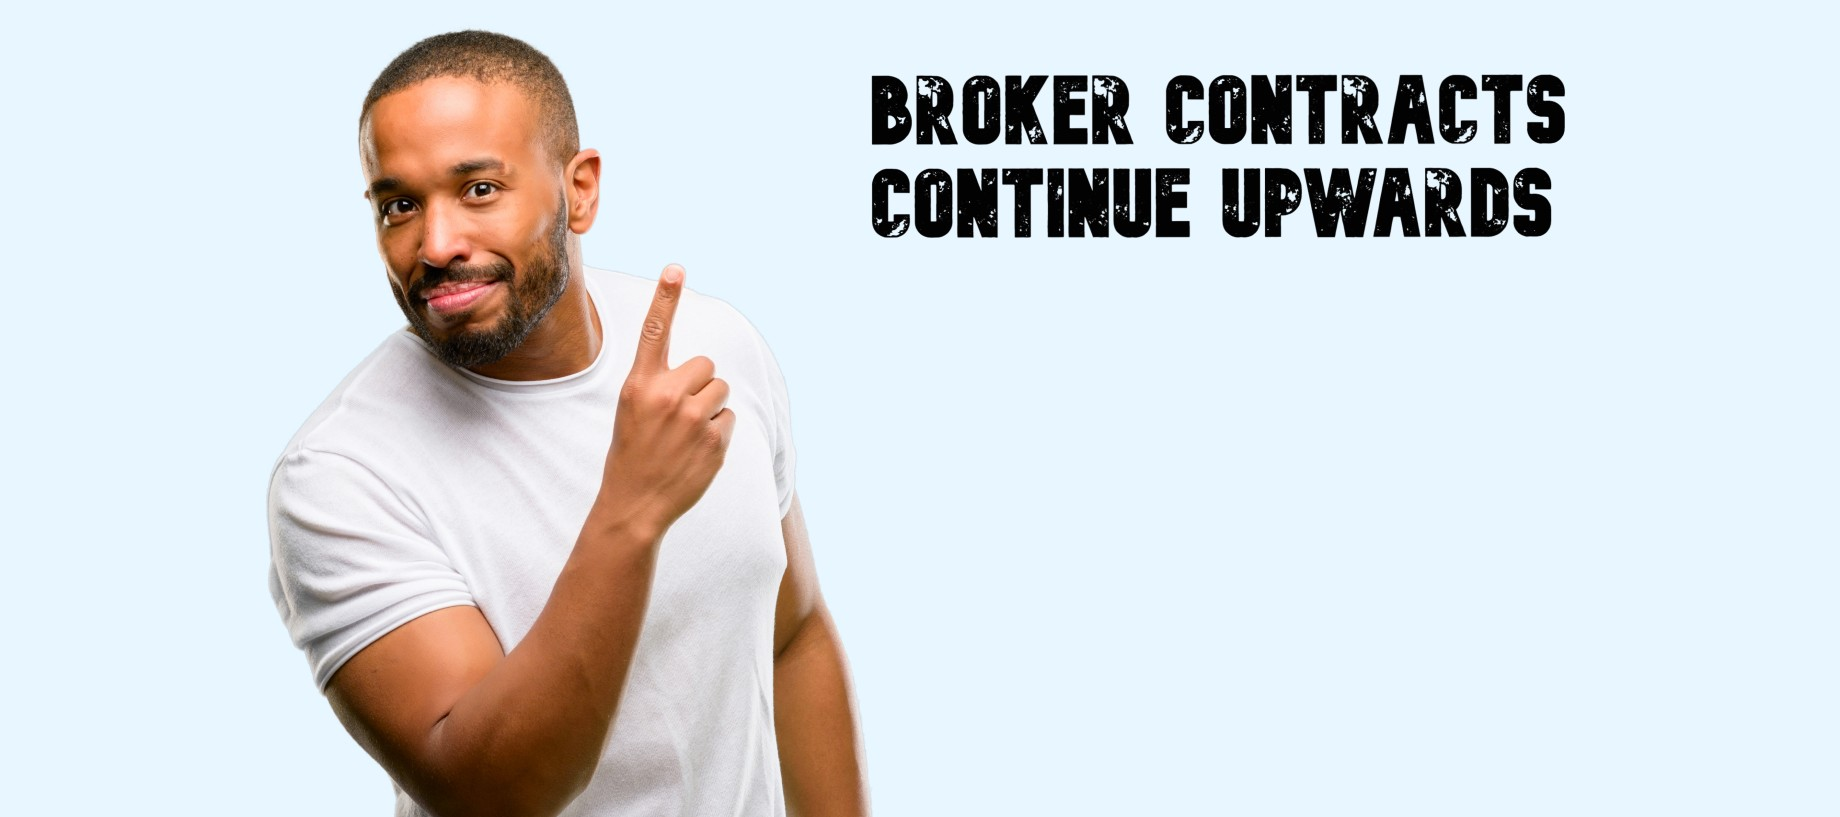 Broker contracts continue upwards